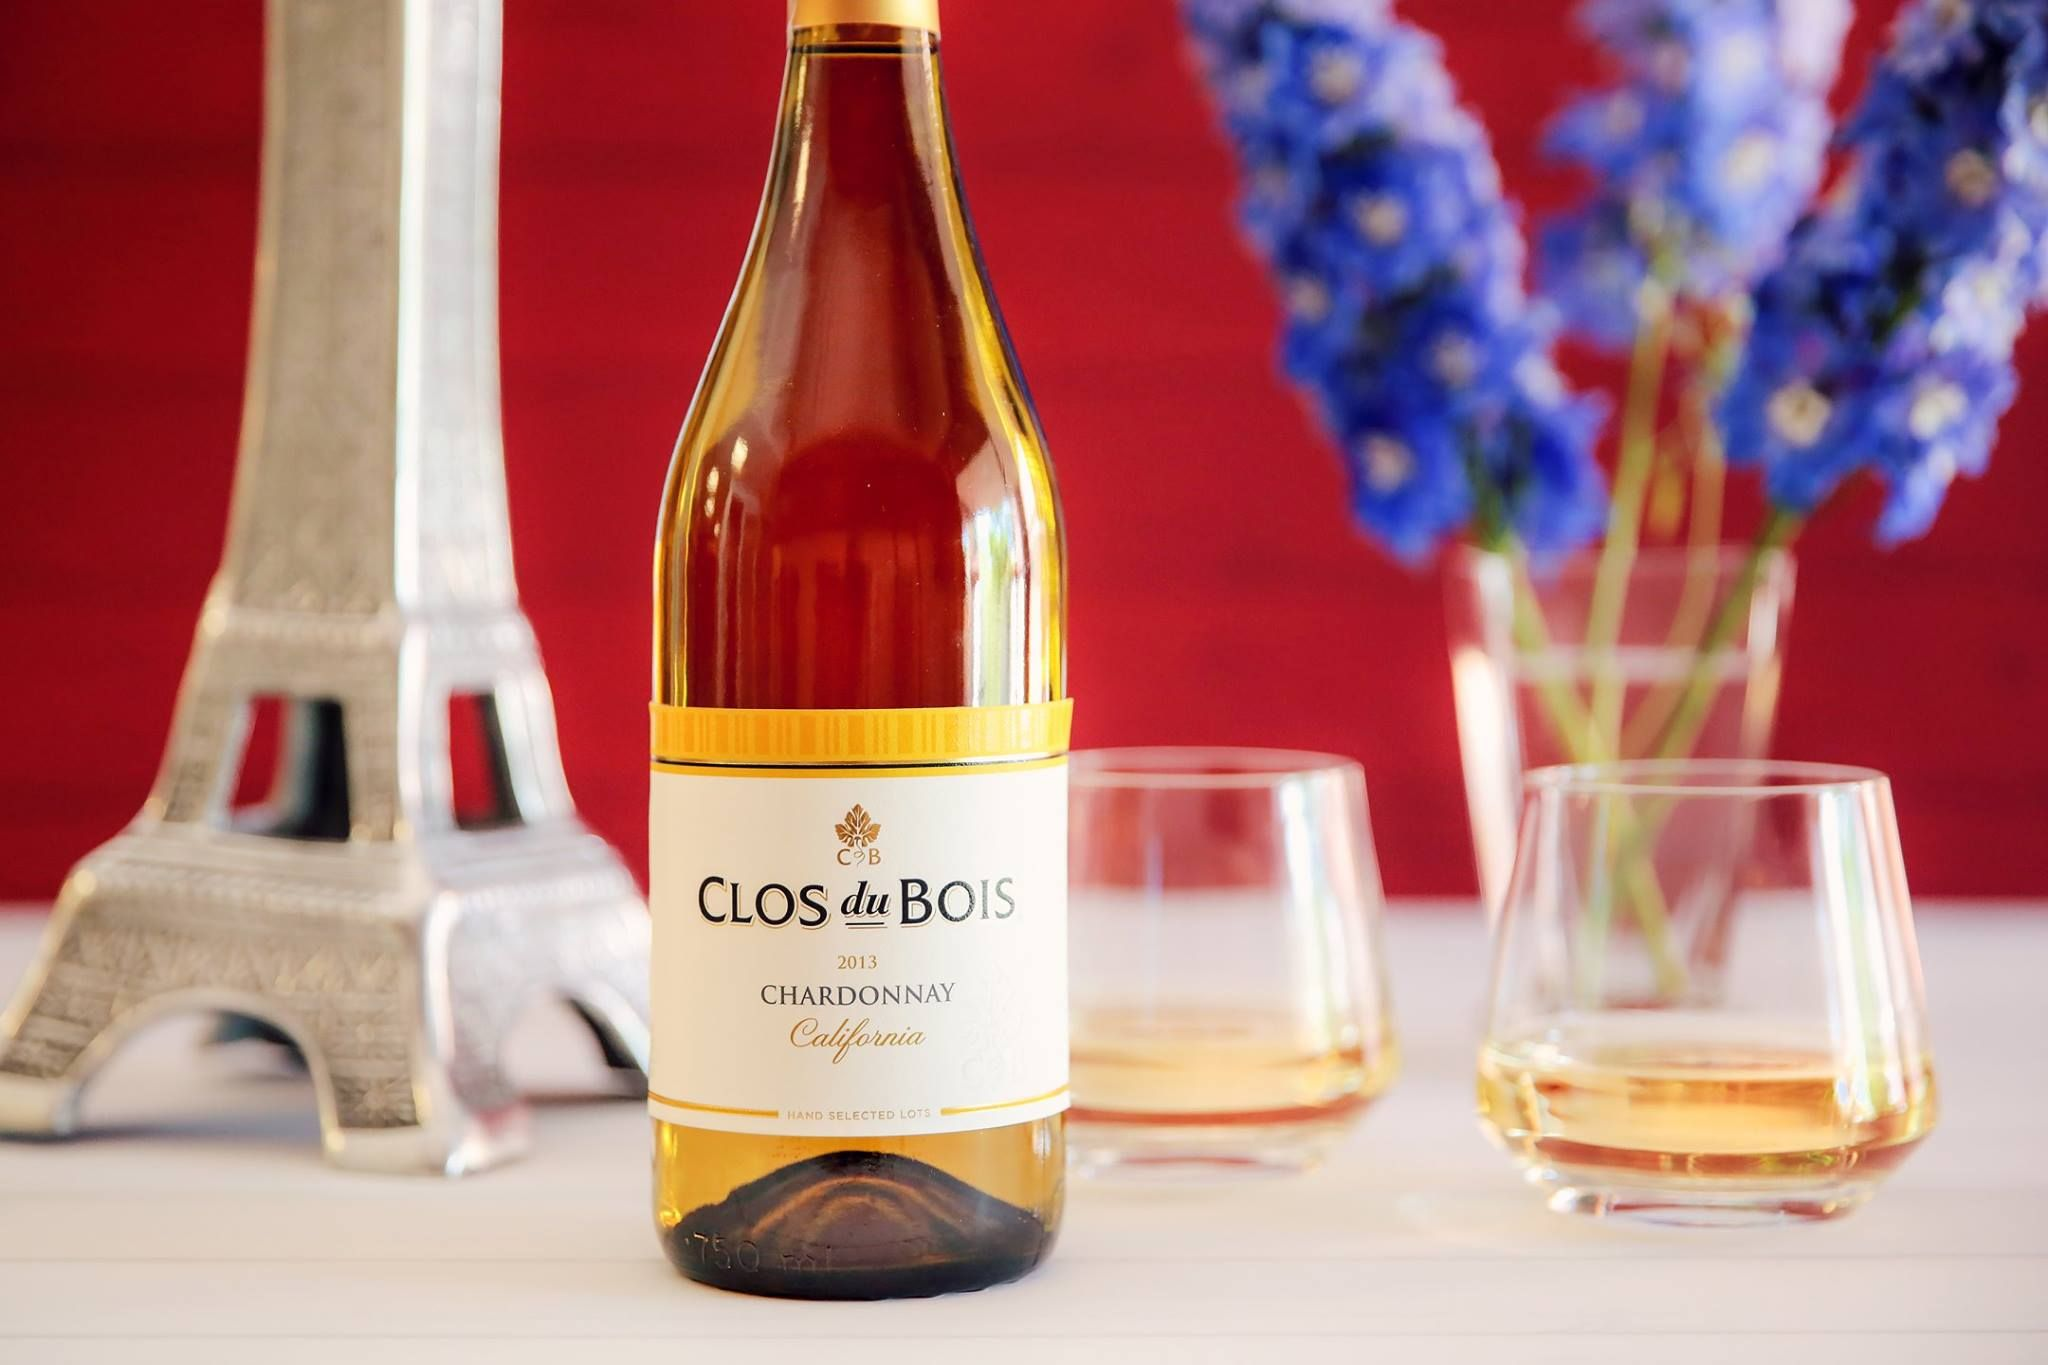 A Clos Toast To Our Fellow Red White And Blue Flag Waving Friends Across The Pond Which Clos Wine Will You Sip In Honor Of Bas Wine Bottle White Wine Wines